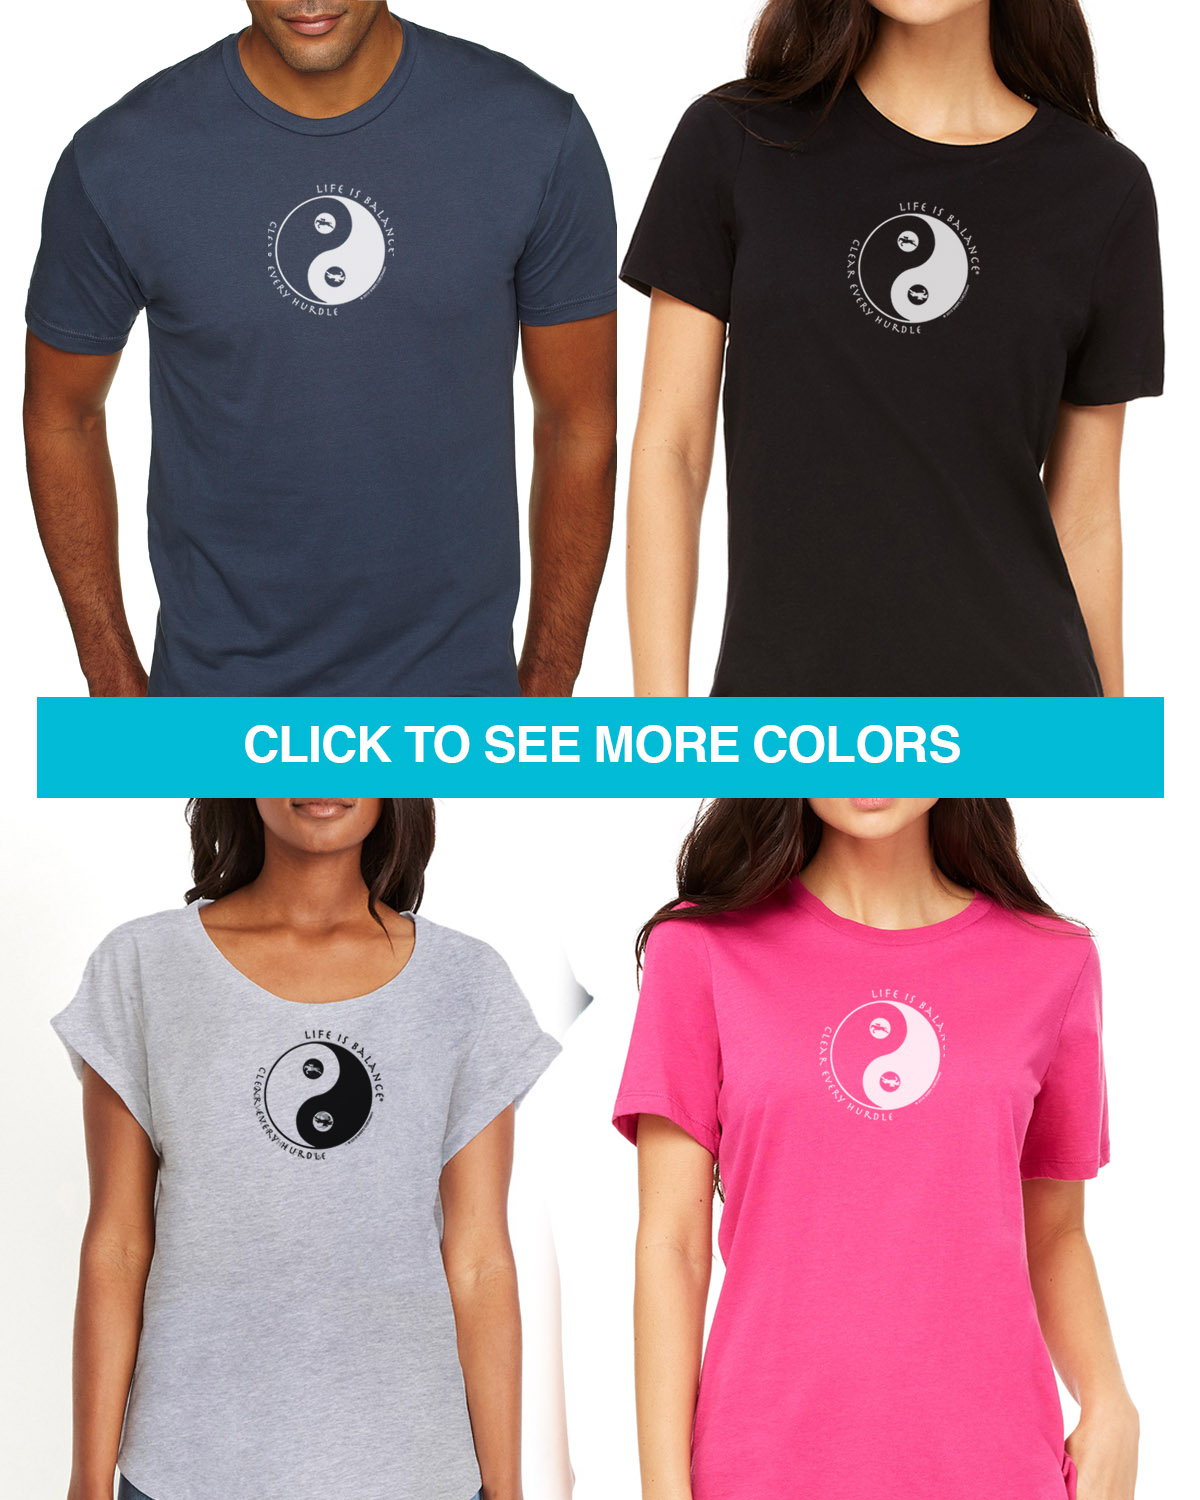 Equestrian short sleeve T-shirts for Men and Women. Women's fitted styles and a unisex style for men and women